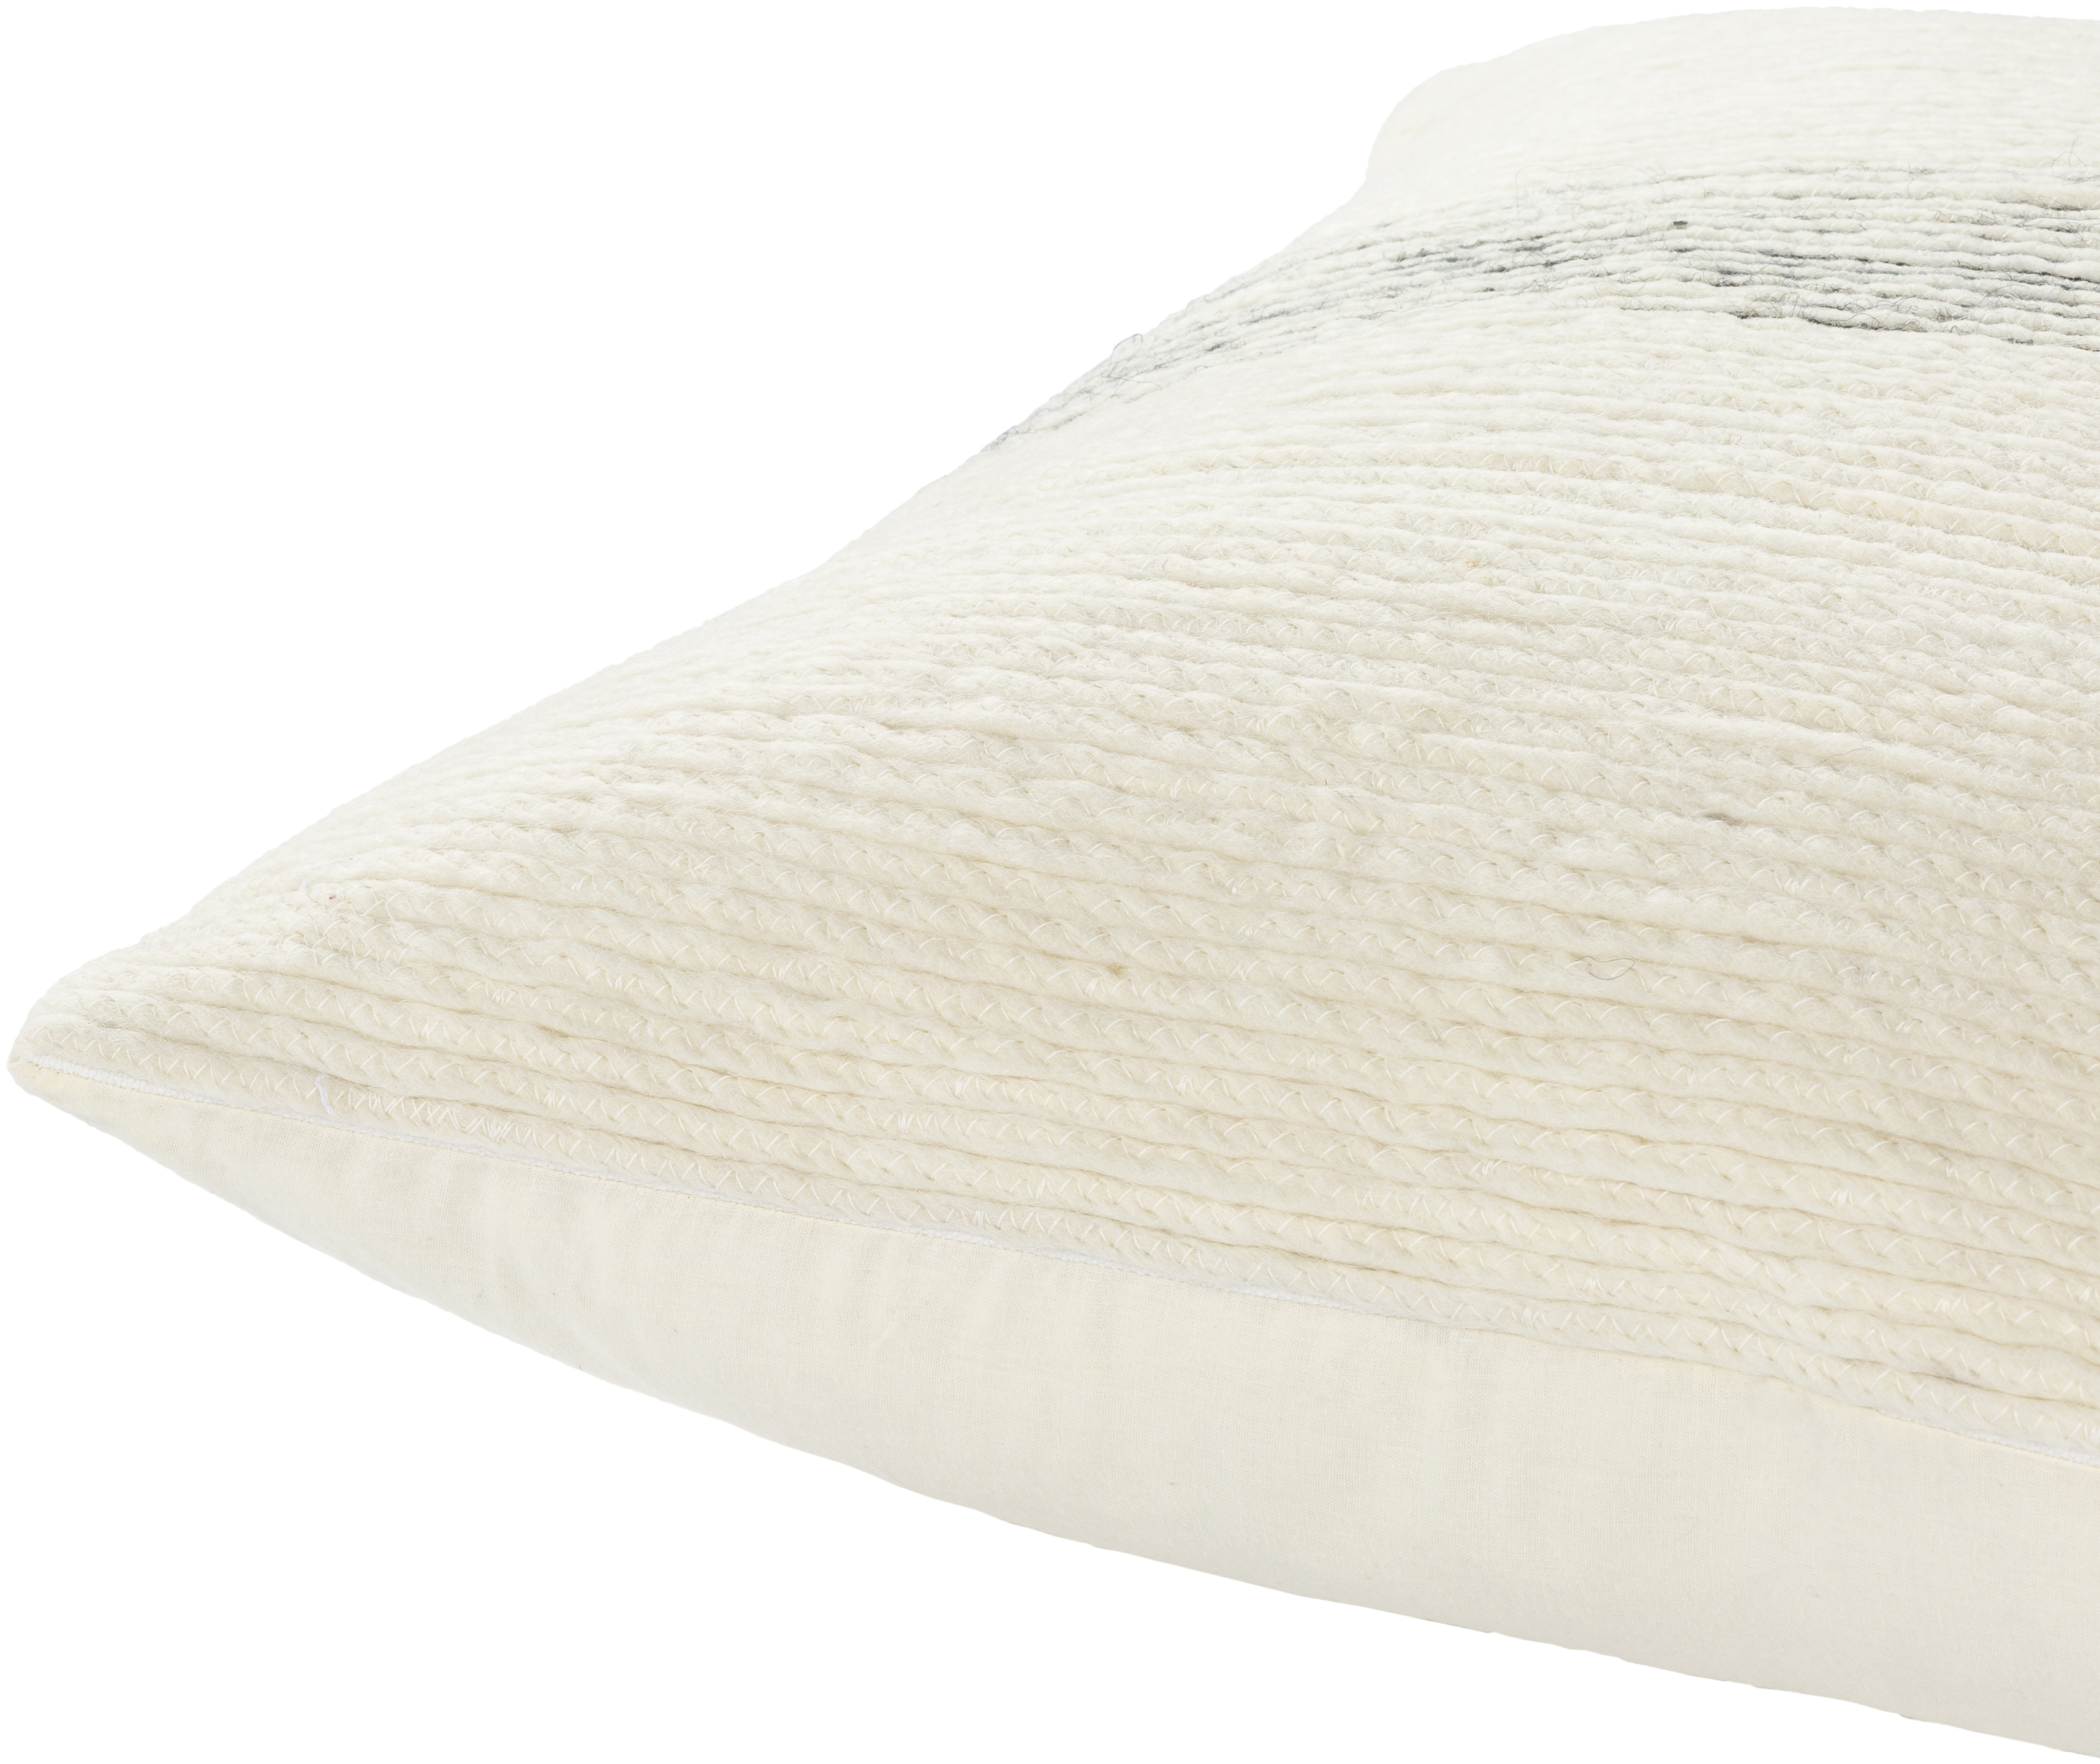 Carine Pillow - 18 x 18 with Polyester Insert